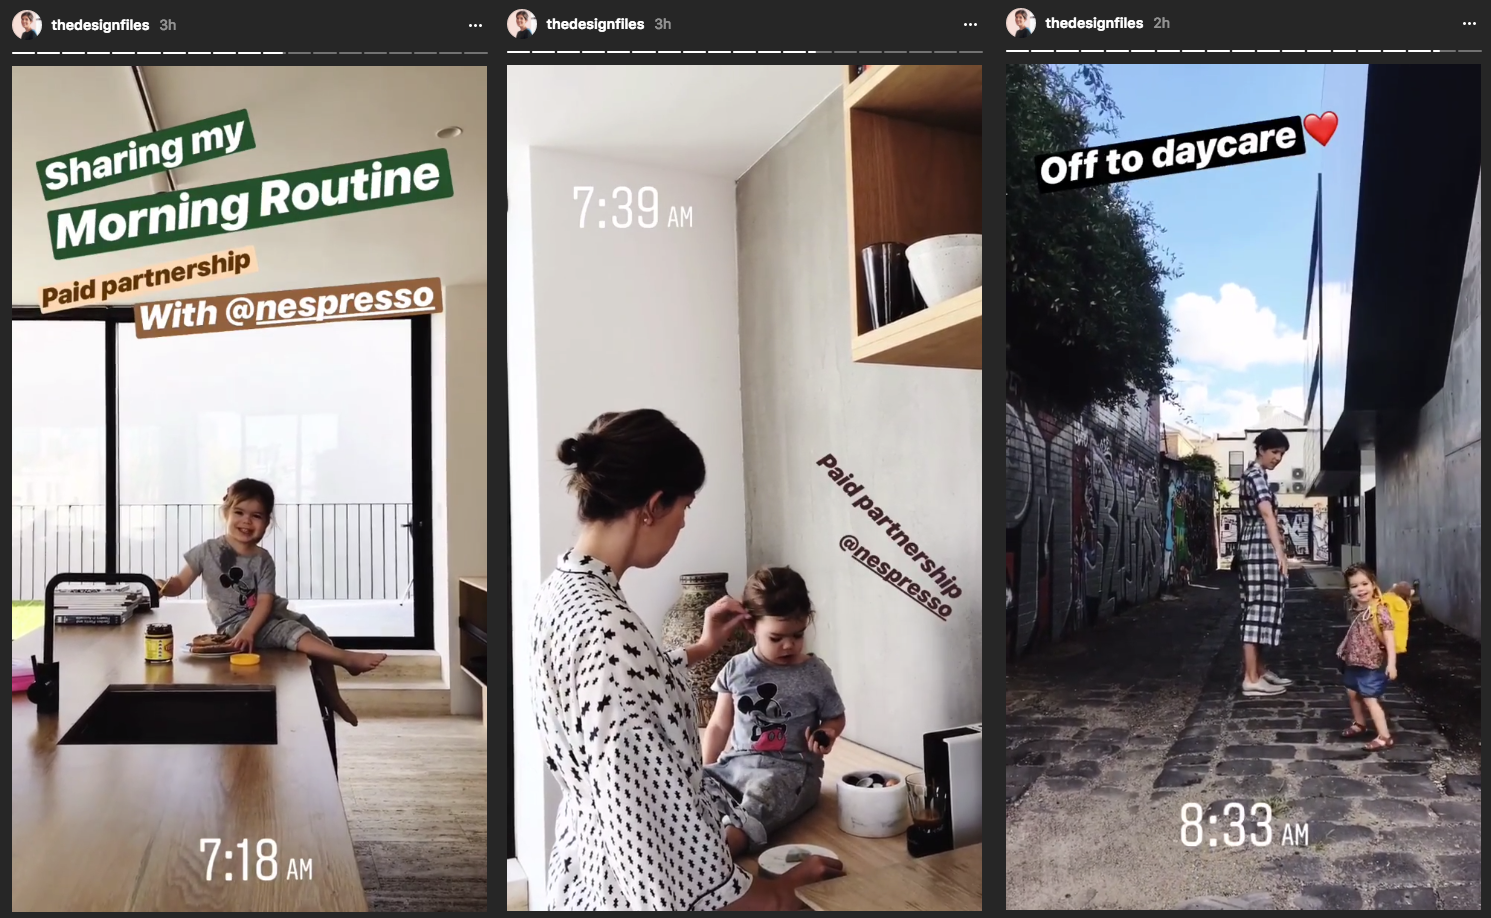 Instagram Marketing Strategy - The Design Files Instagram Stories